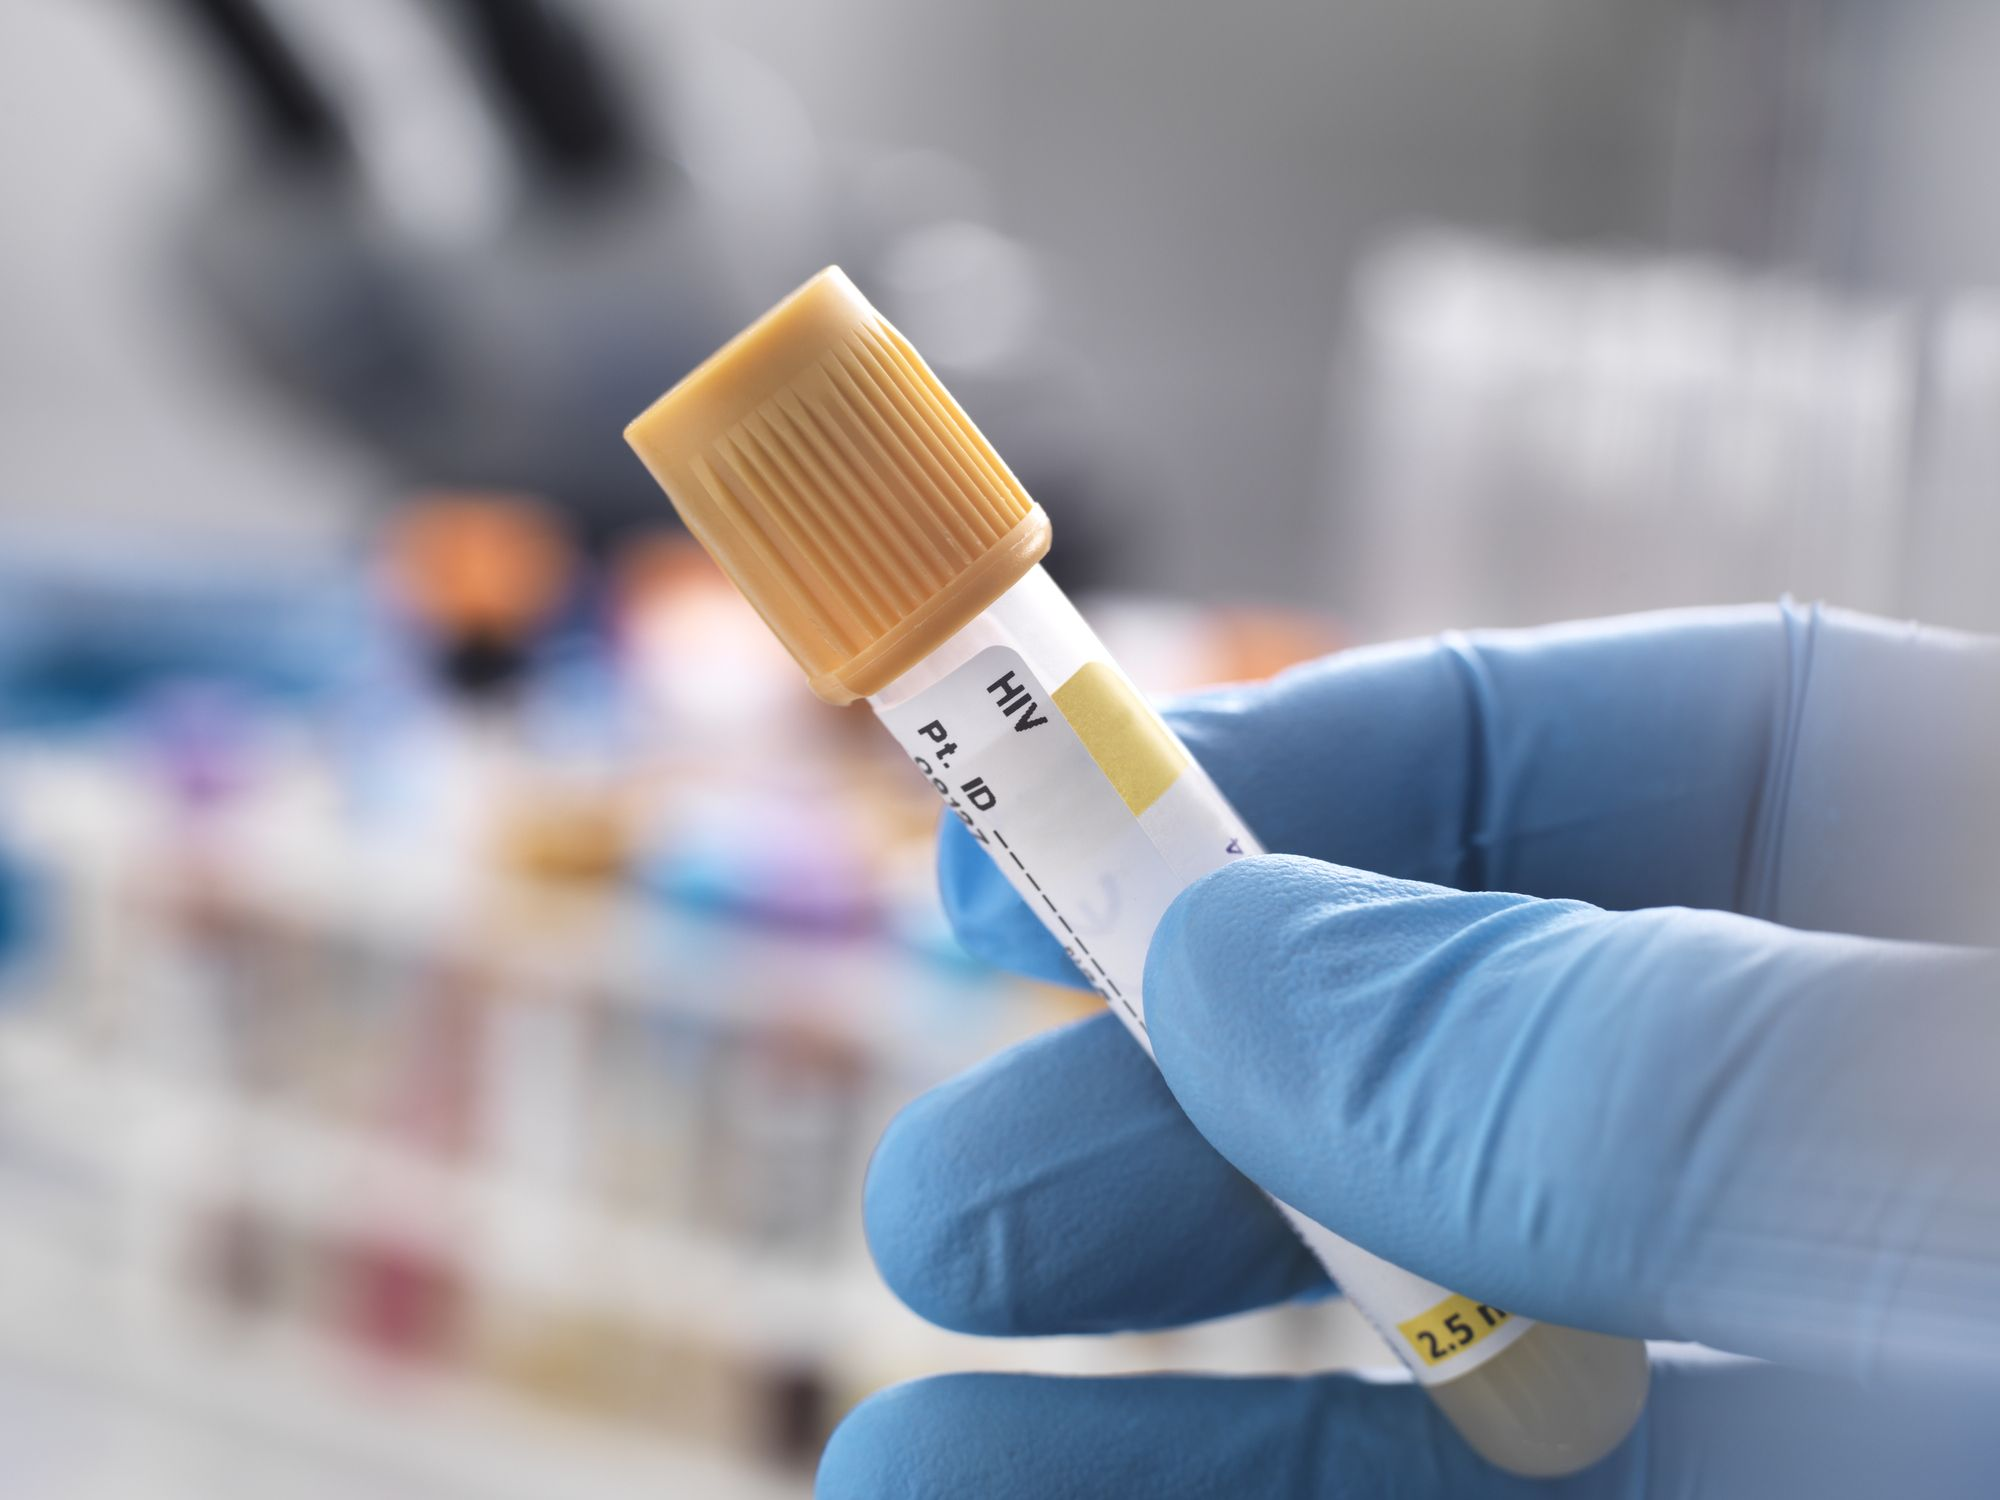 Scientists report a 2nd person has been cured of HIV